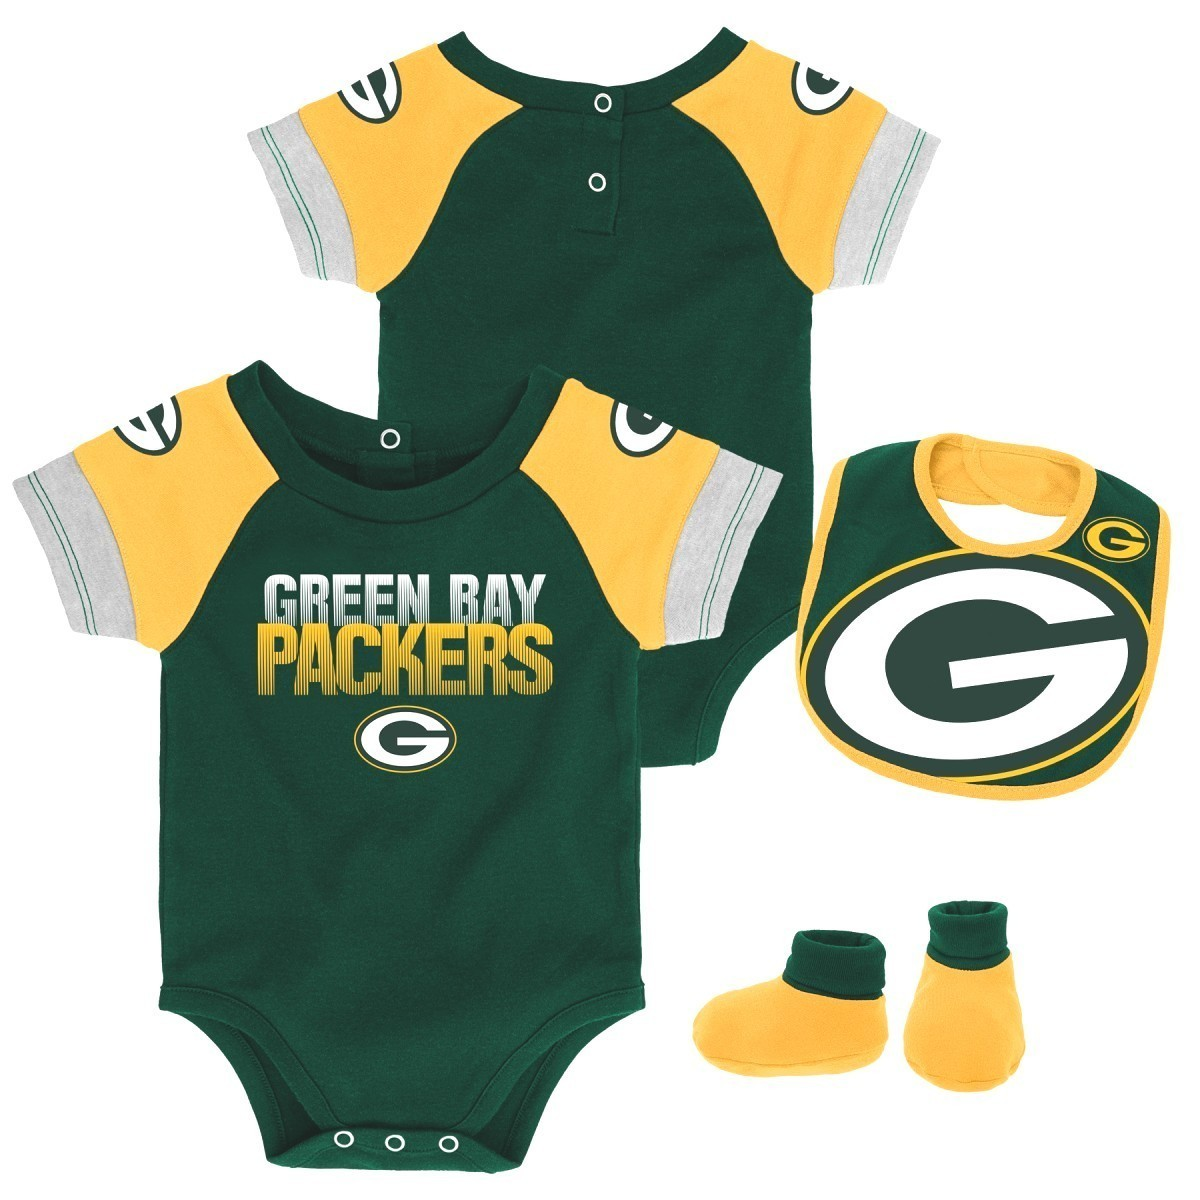 super popular a142d c4abd Details about Green Bay Packers NFL